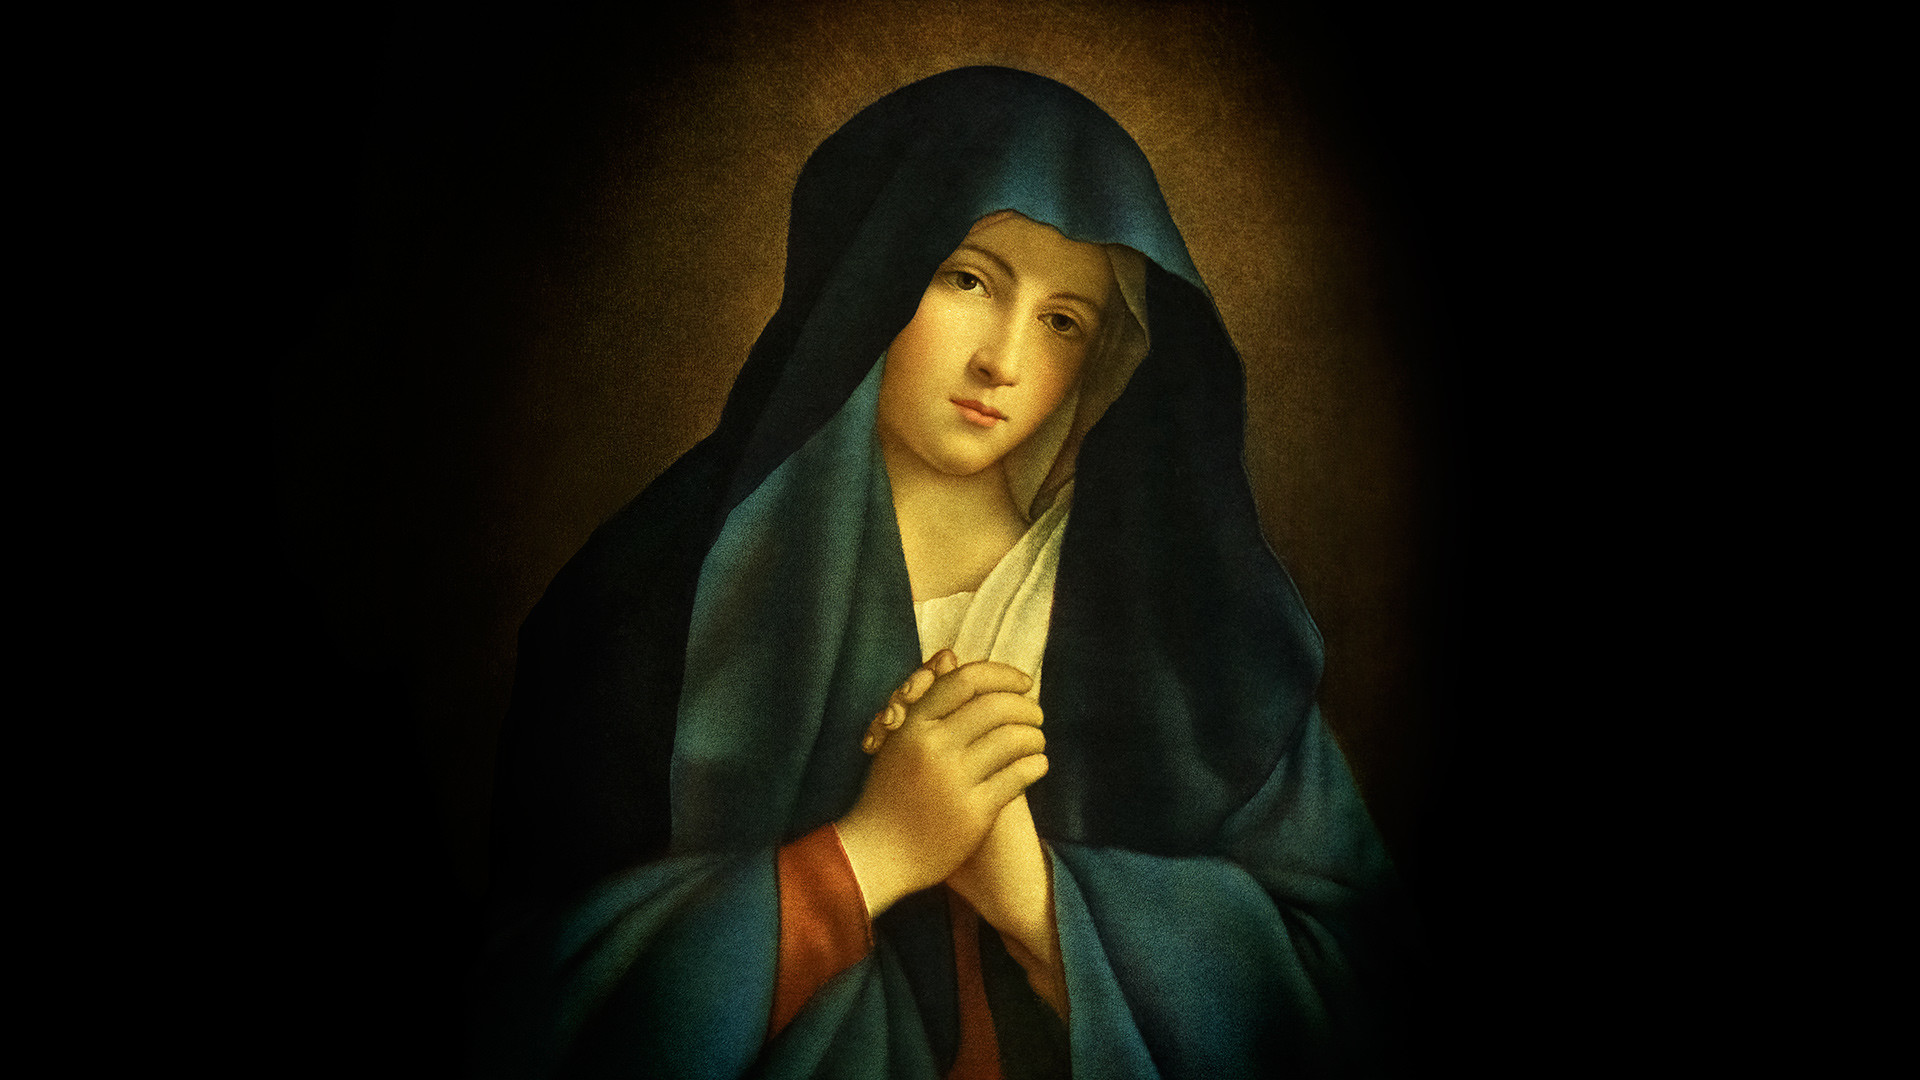 Mary Mother of God Wallpaper 40 images